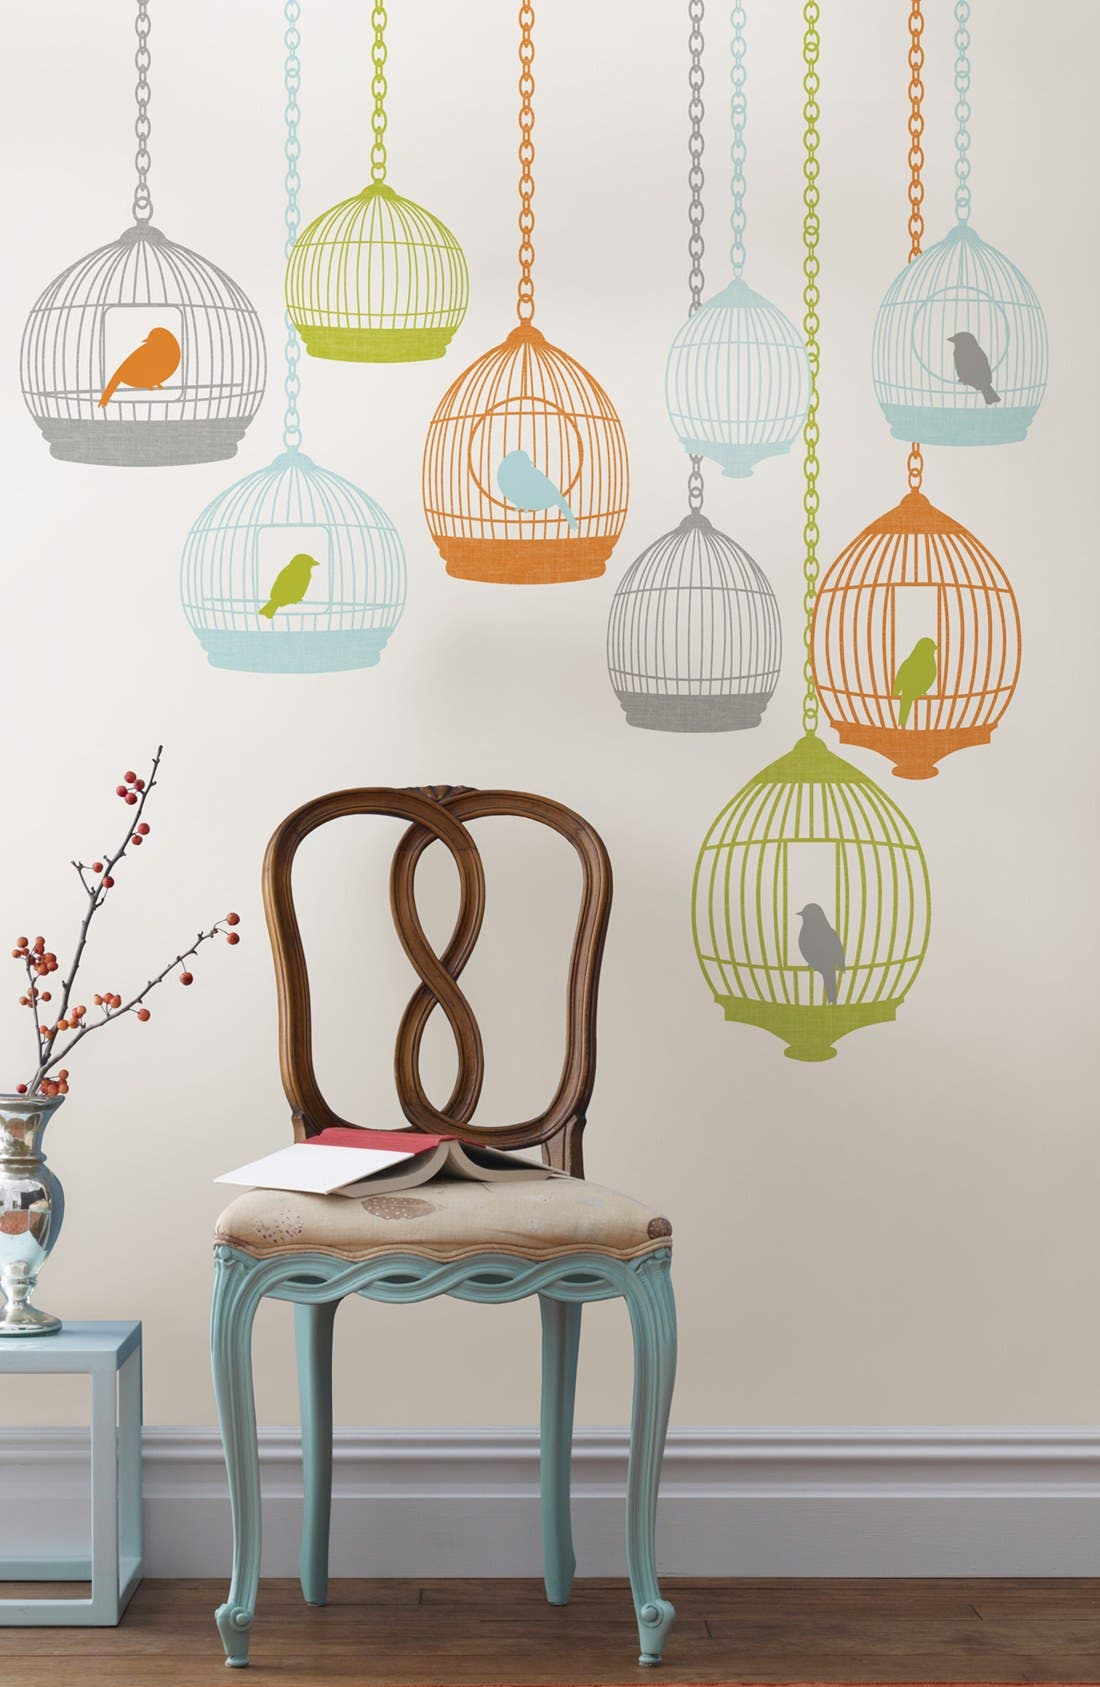 Alternate Image 1 Selected - Wallpops Birdcage Wall Art